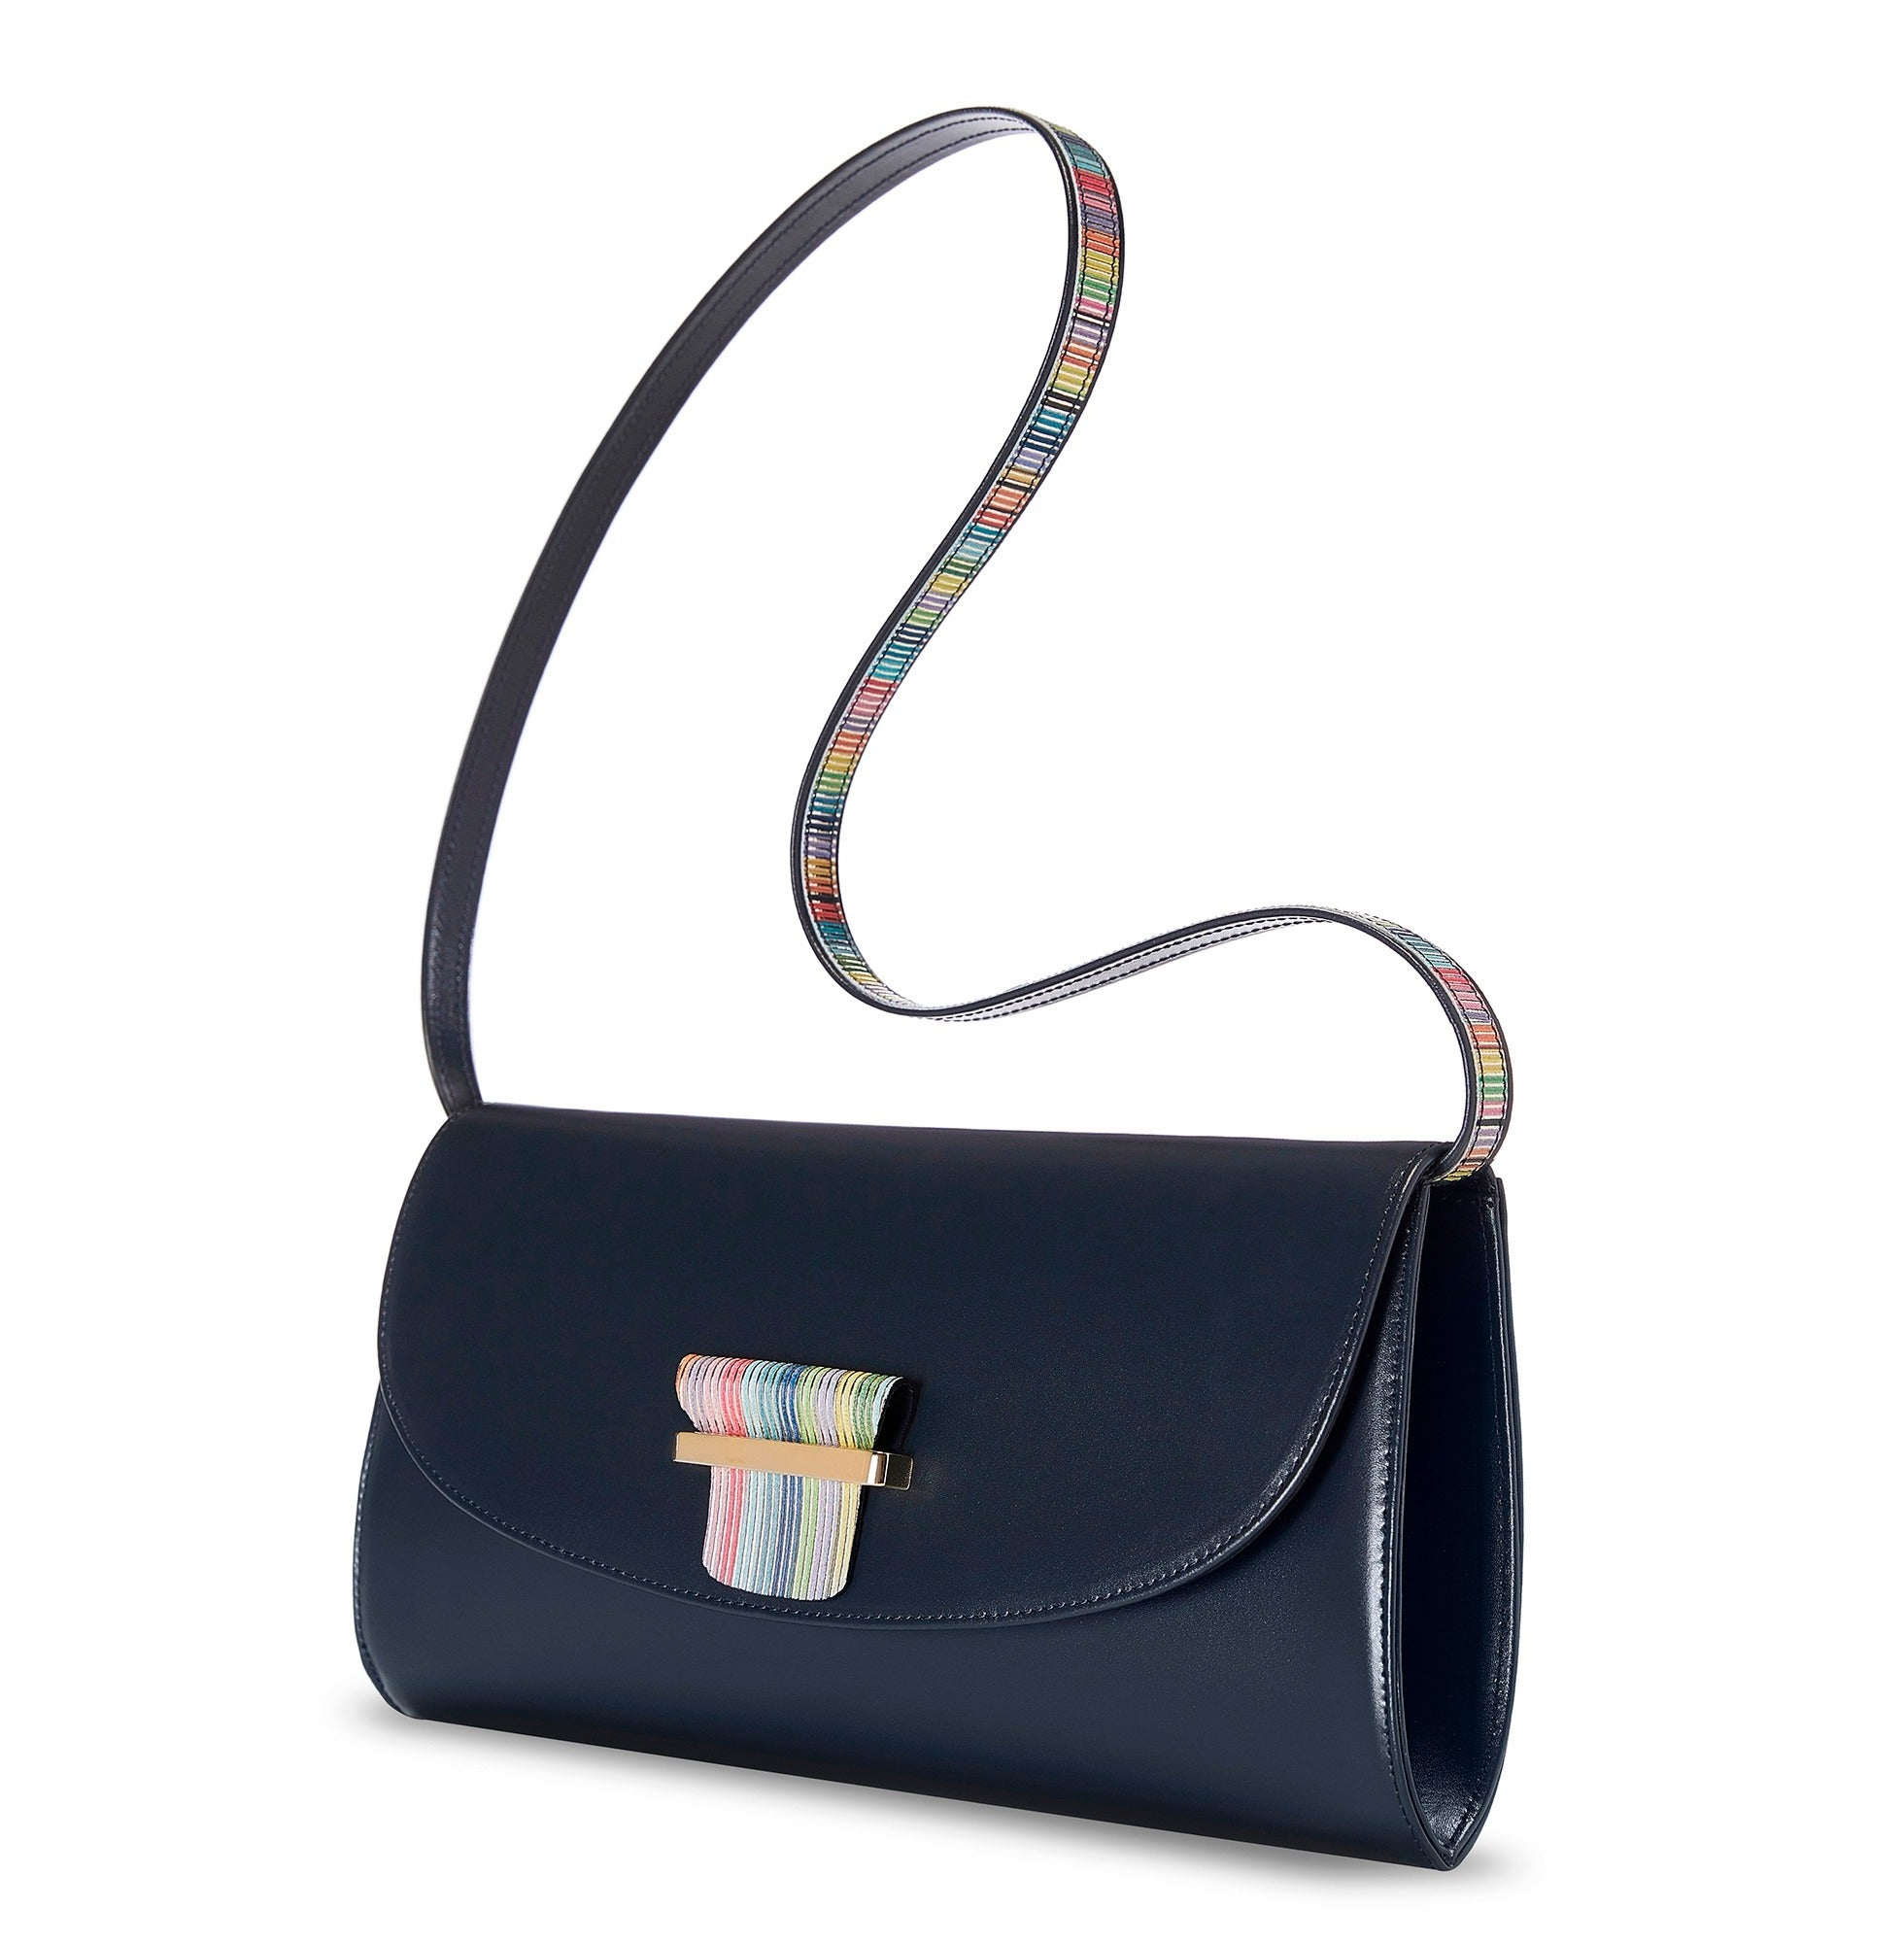 ESME CLUTCH - NAVY BLUE - NOTTEVERA